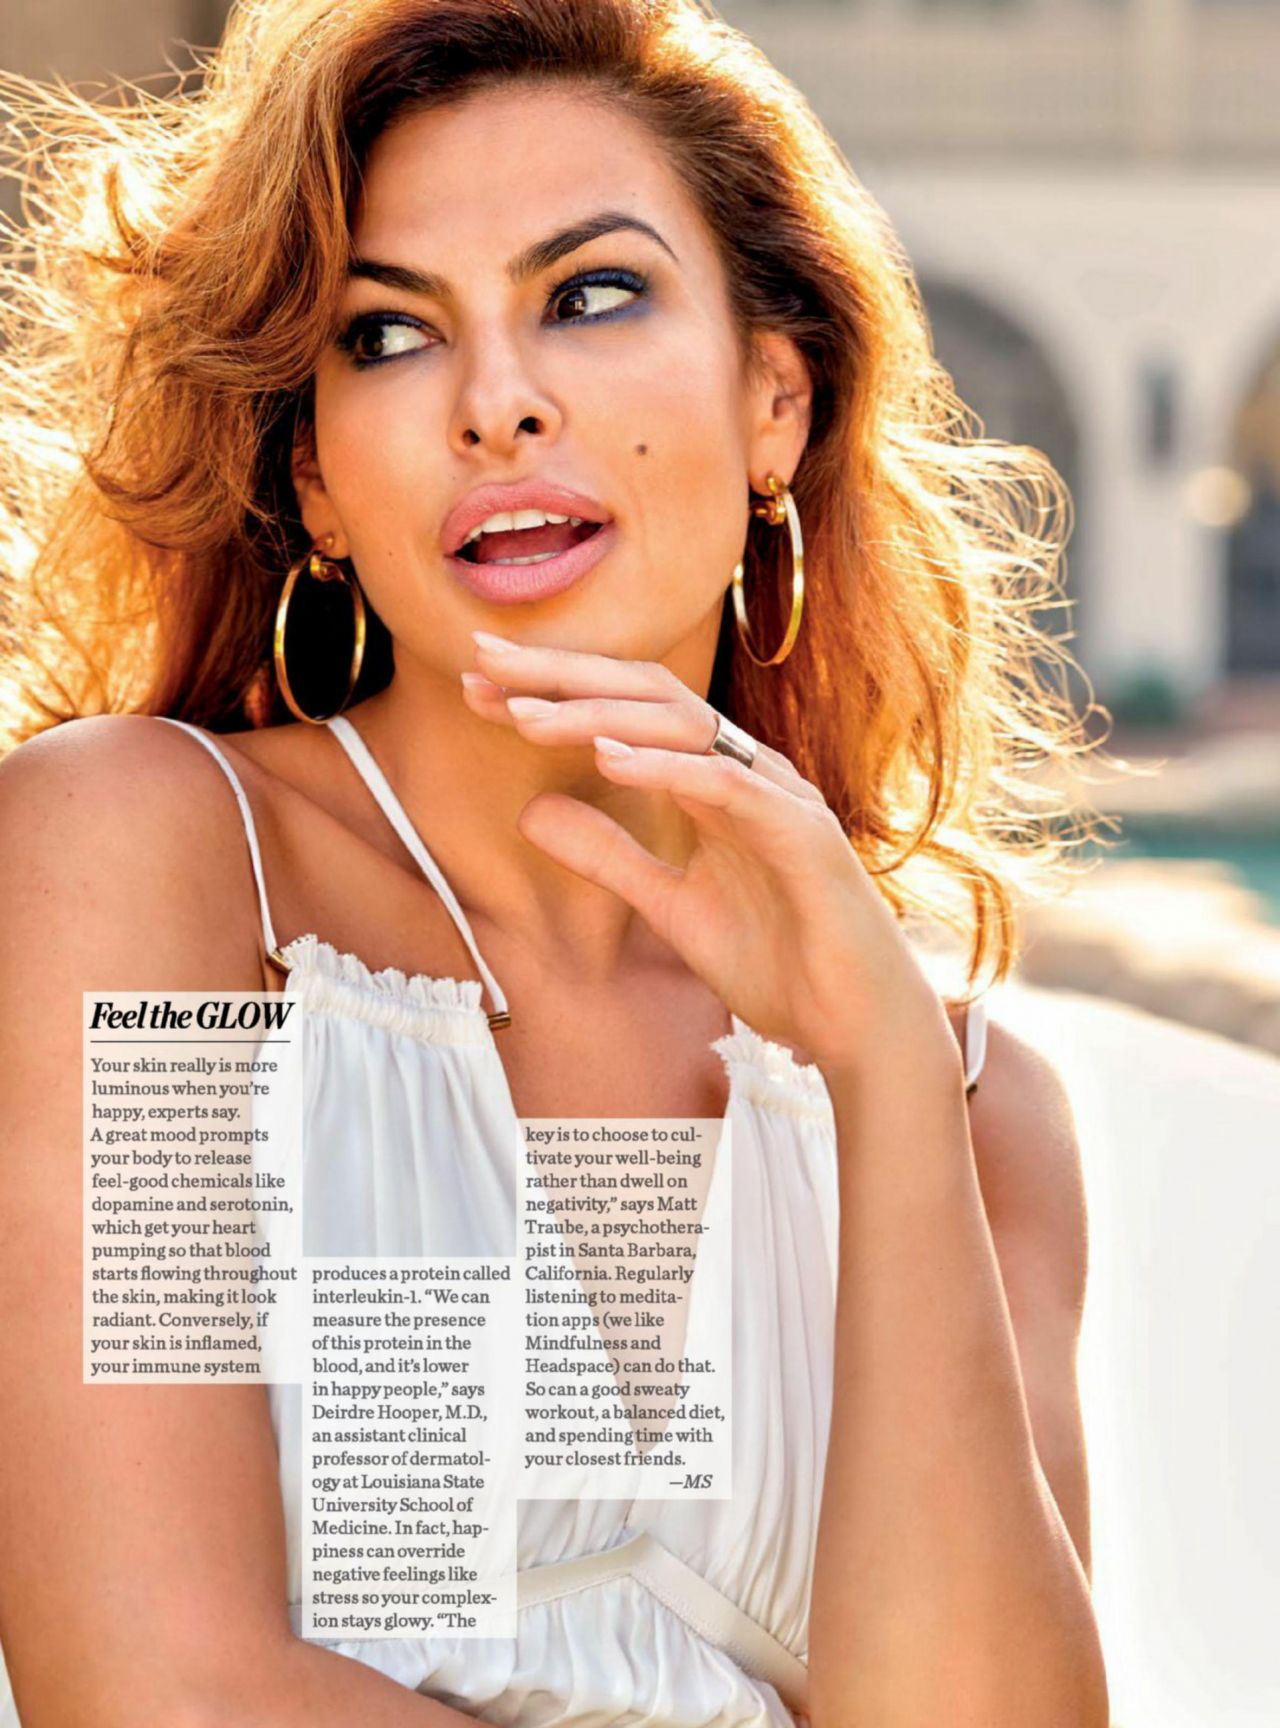 Eva mendes shape magazine malaysia may 2019 issue - 2019 year